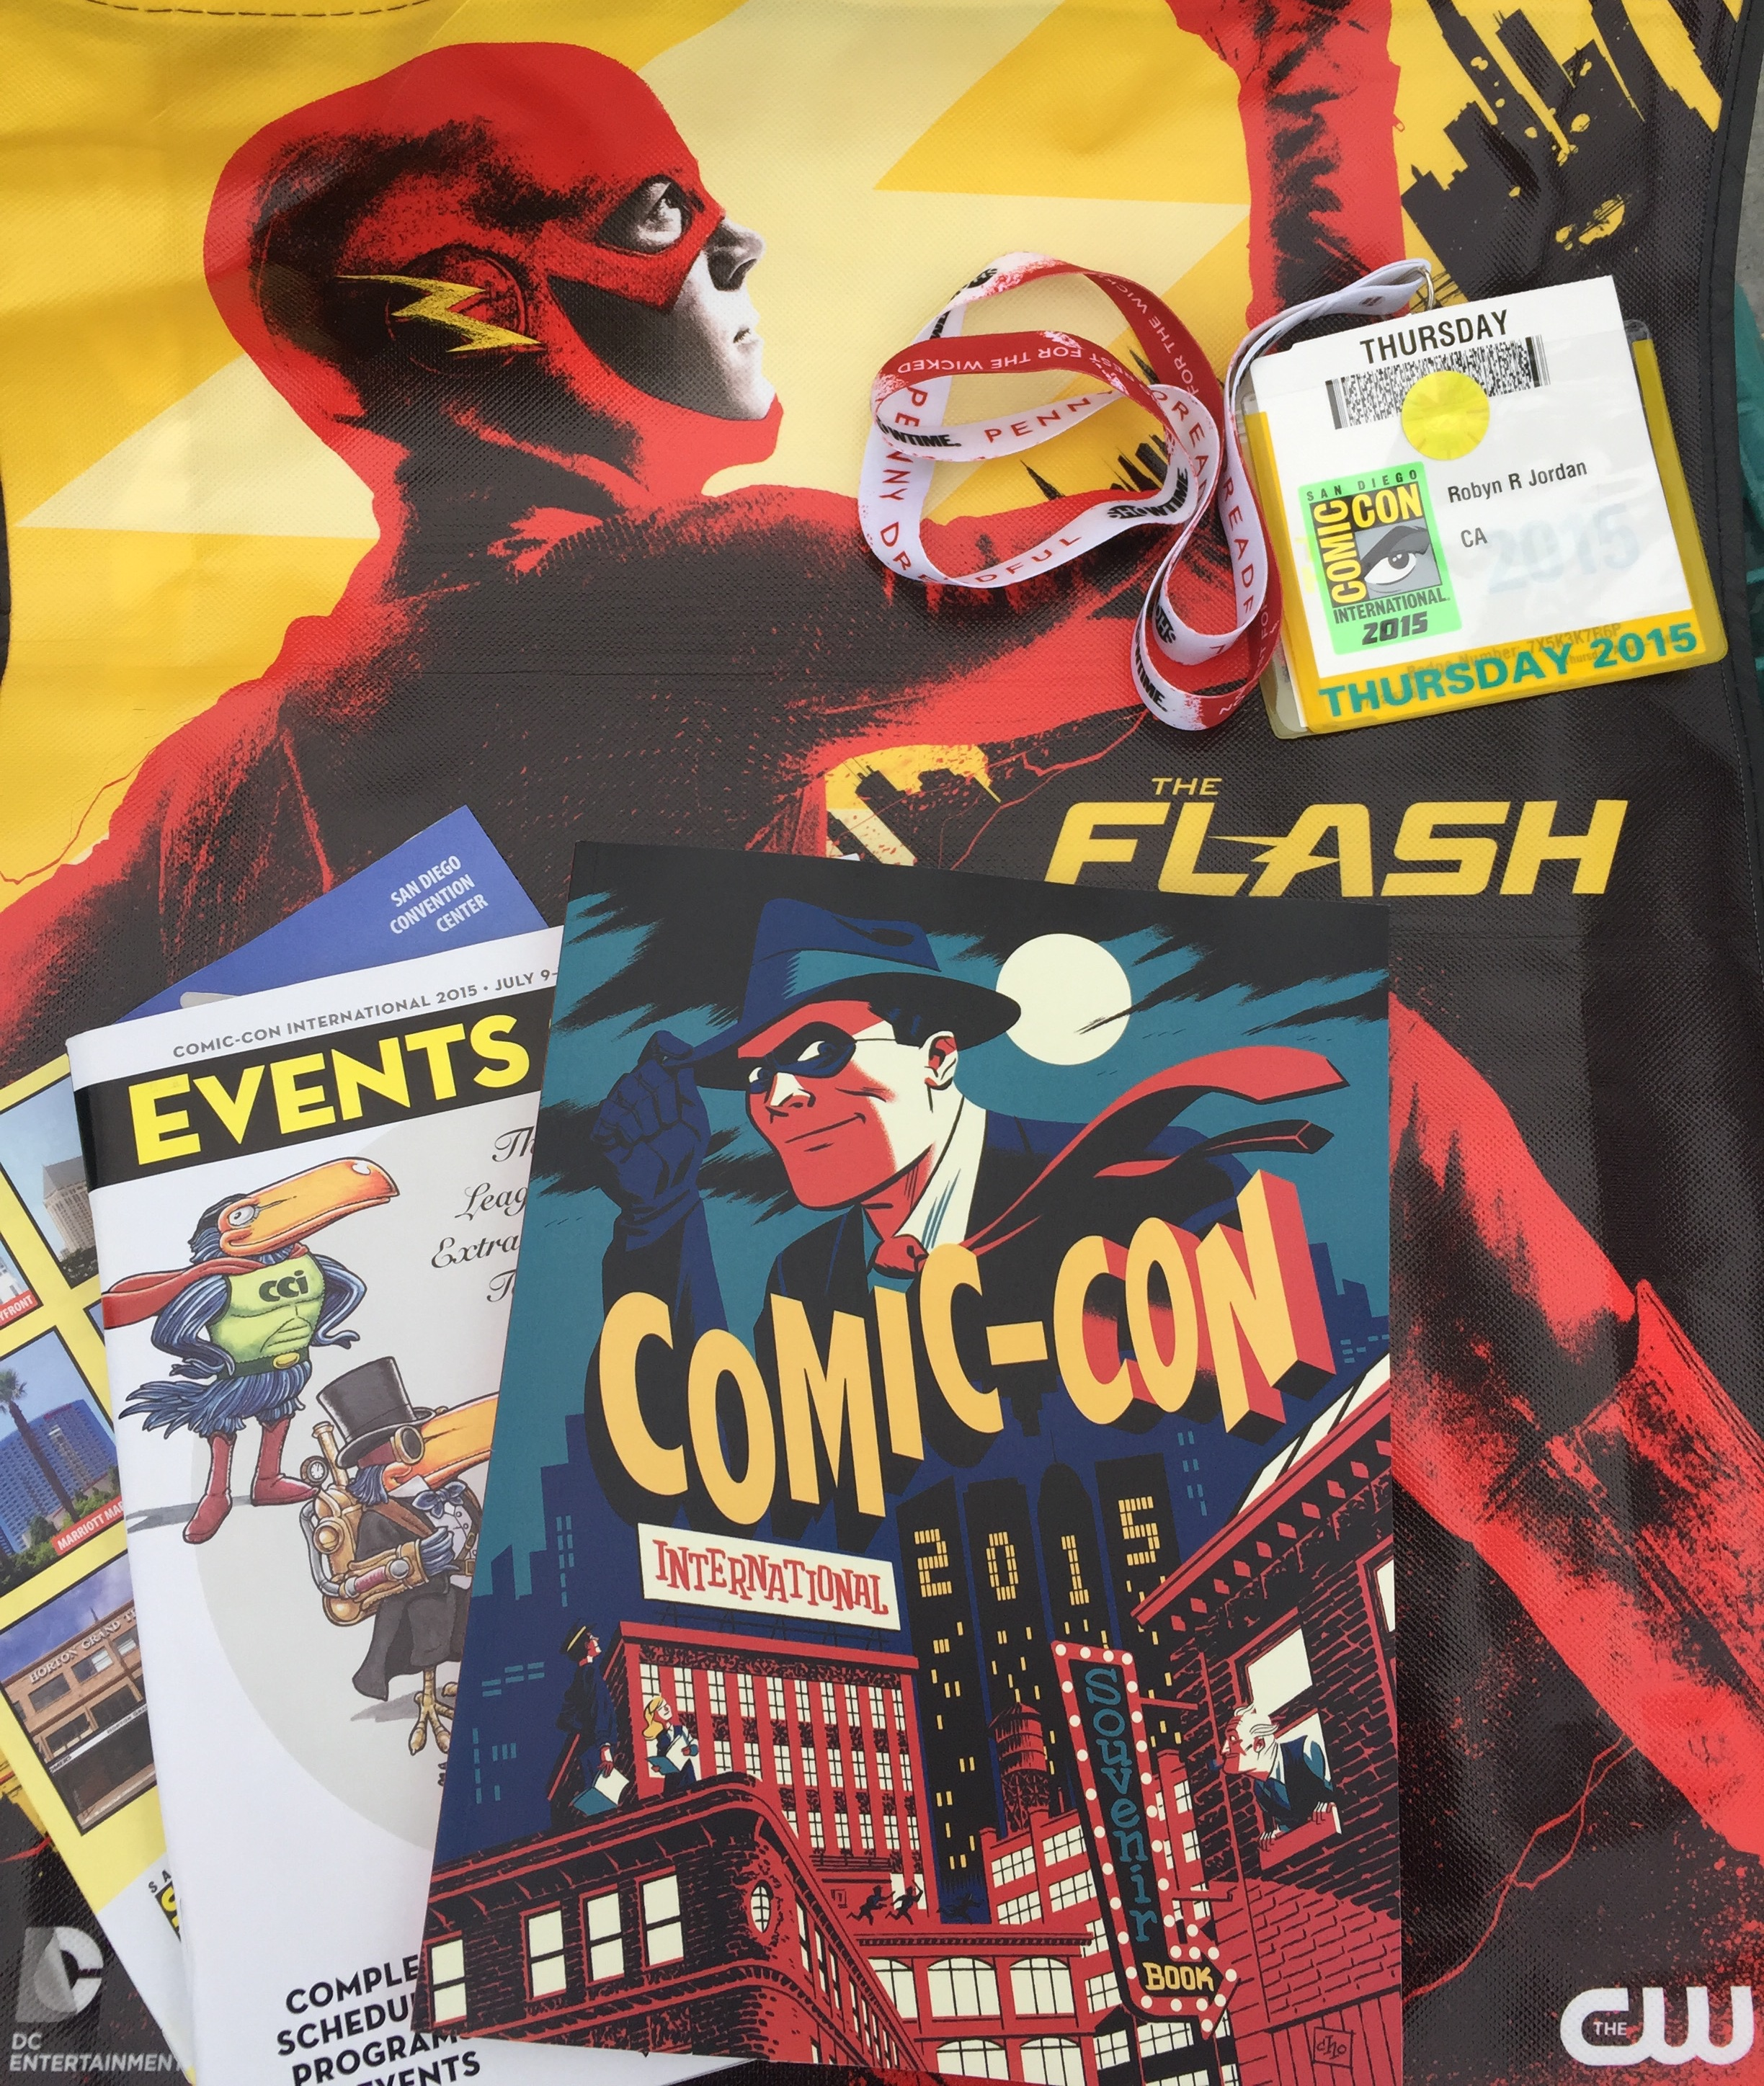 SDCC2015 Recap and Pictures